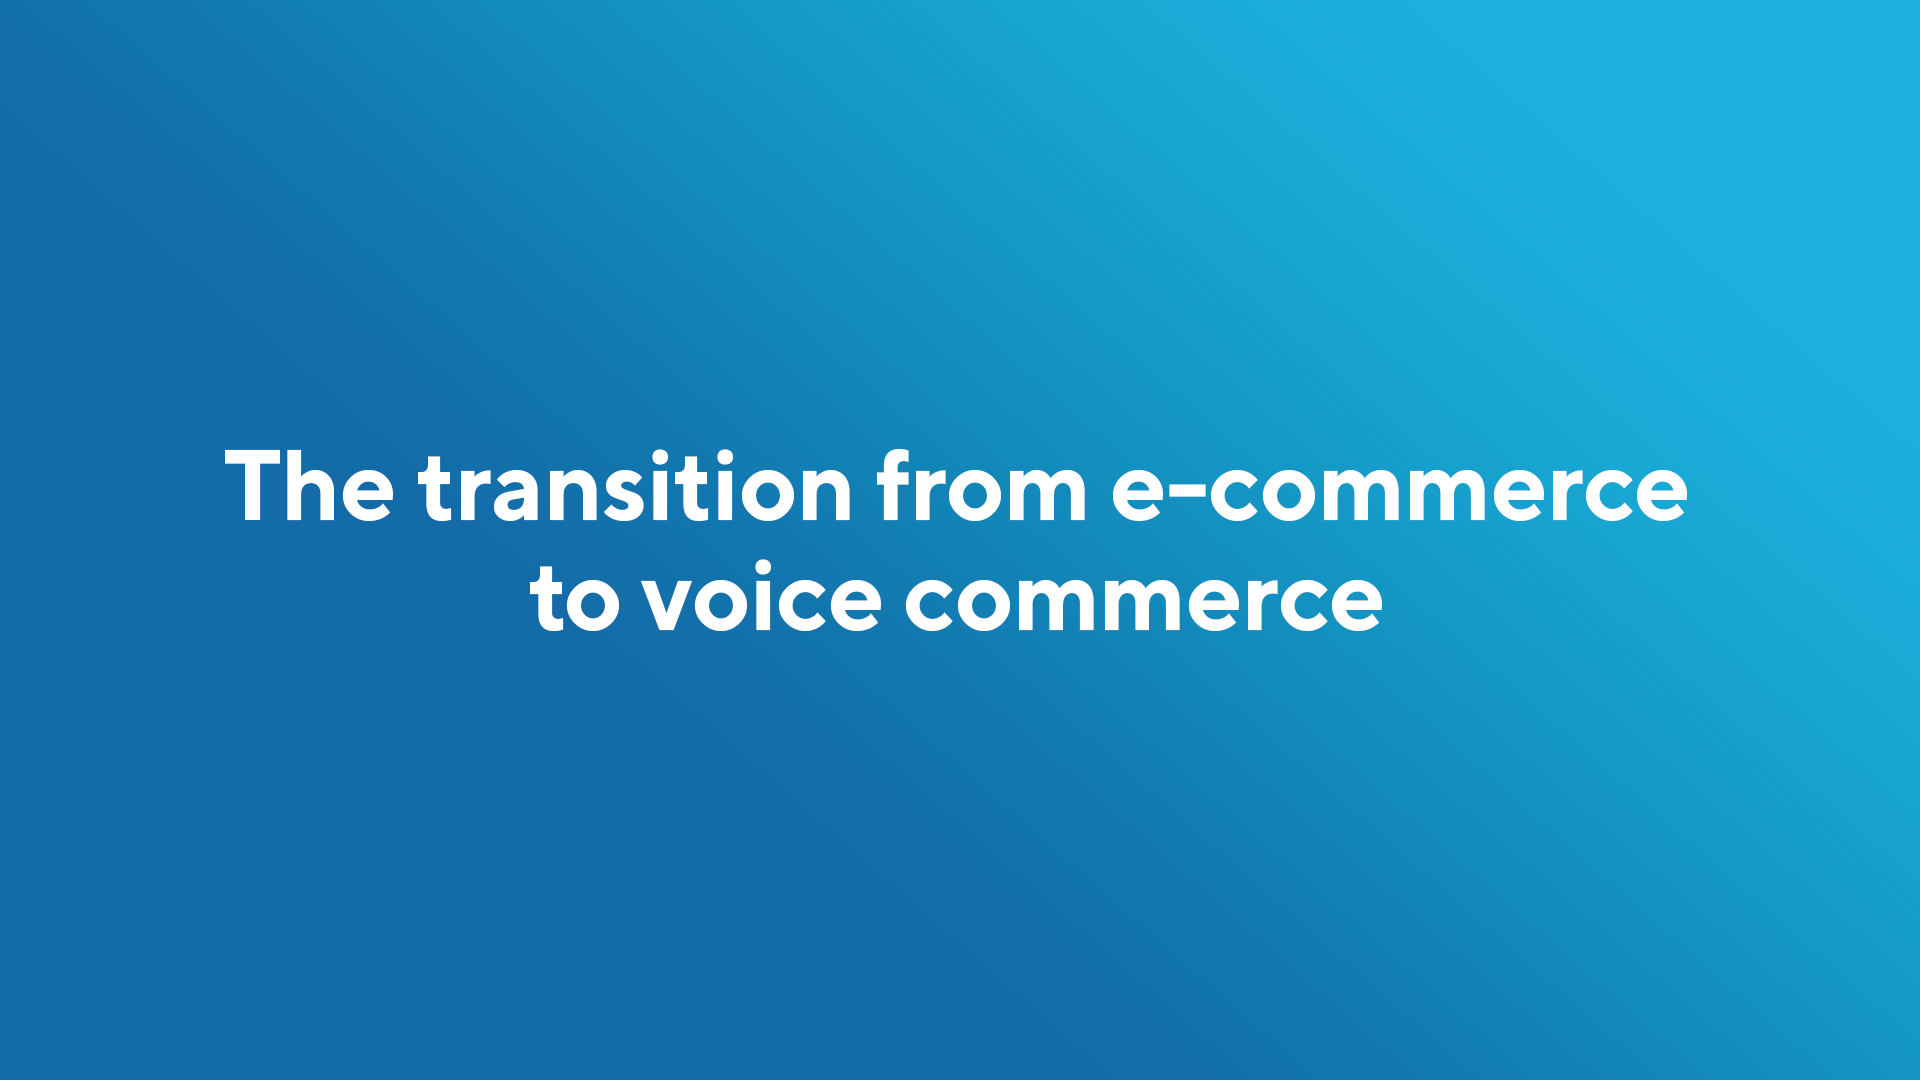 The transition from e-commerce to voice commerce